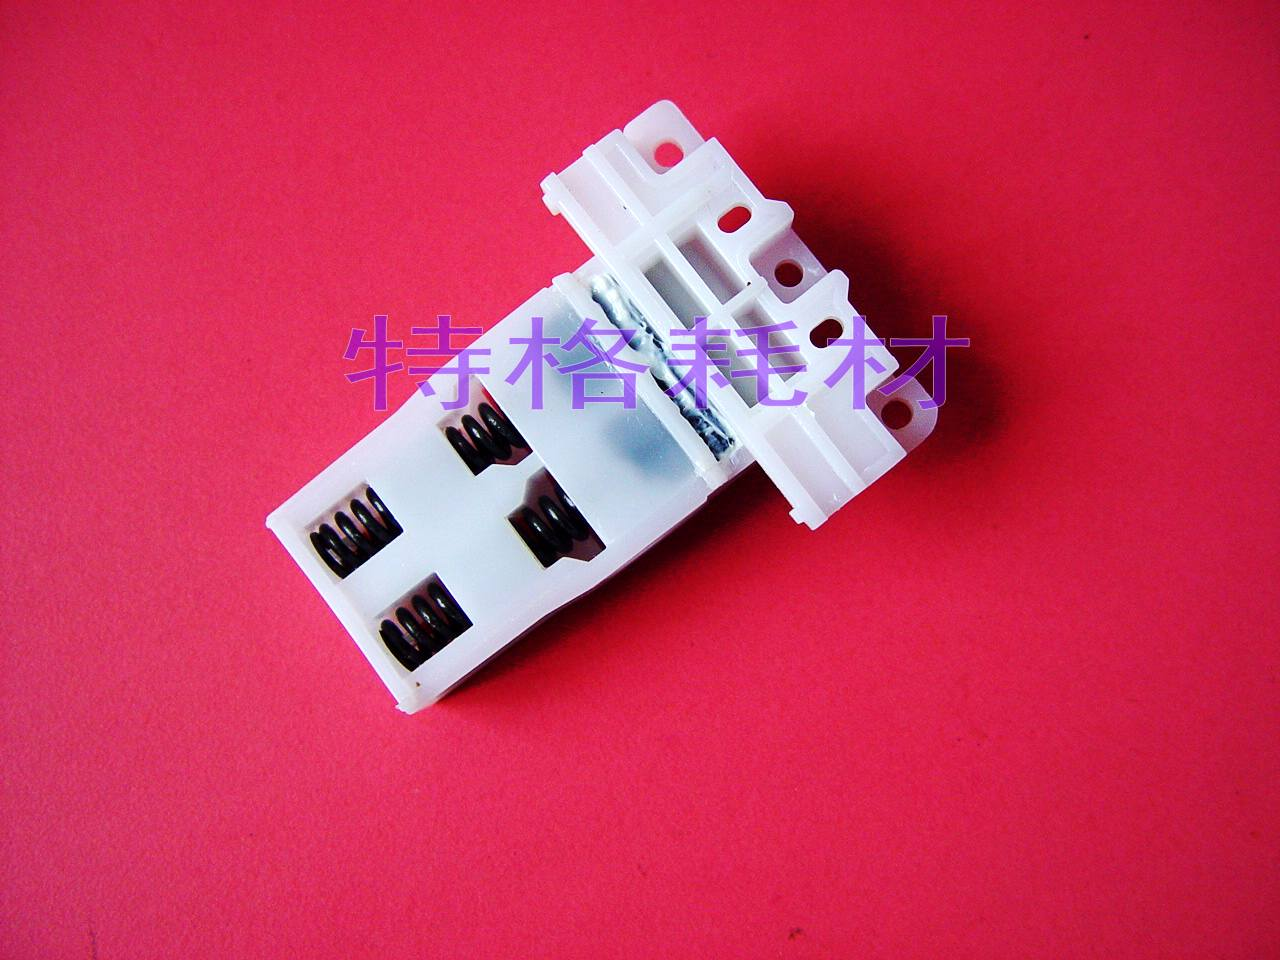 Applicable to the original Samsung 482448284825, 4826FN, HN, cover plate, hinge, feeder, bracket 1